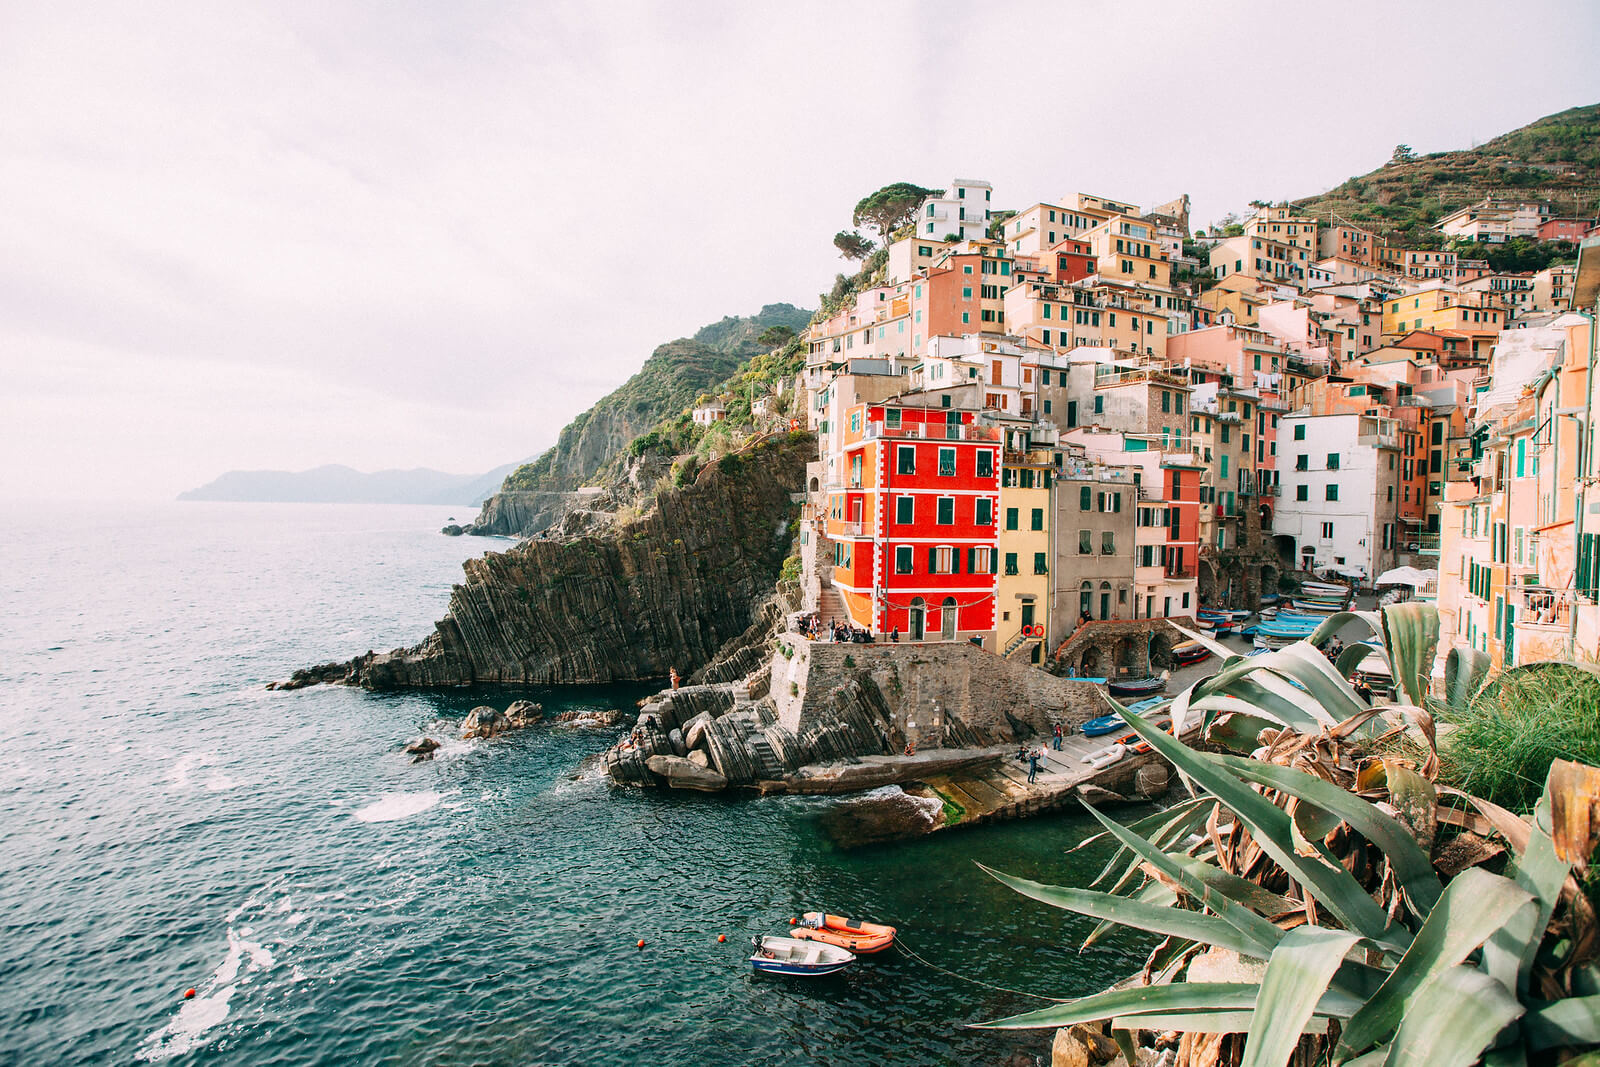 Cinque Terre coastline with colourful houses perched along the cliffs in Italy